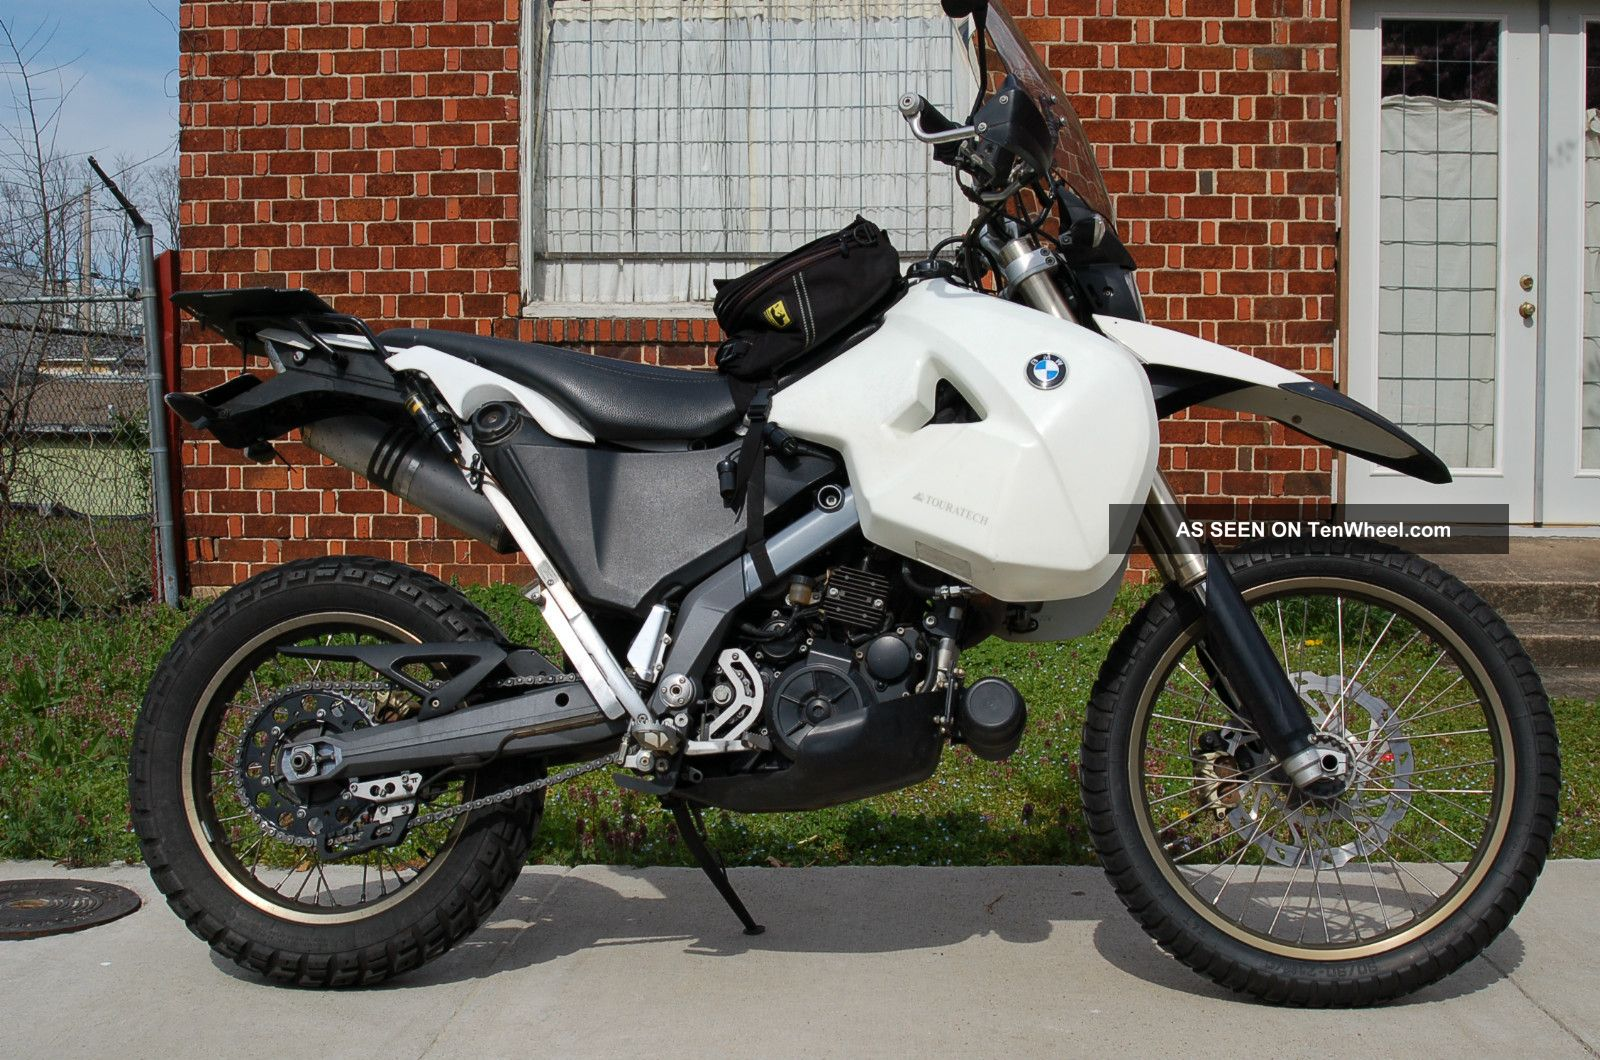 Bmw G650 X Challenge 2007 Adventure Ready Dualsport Other photo